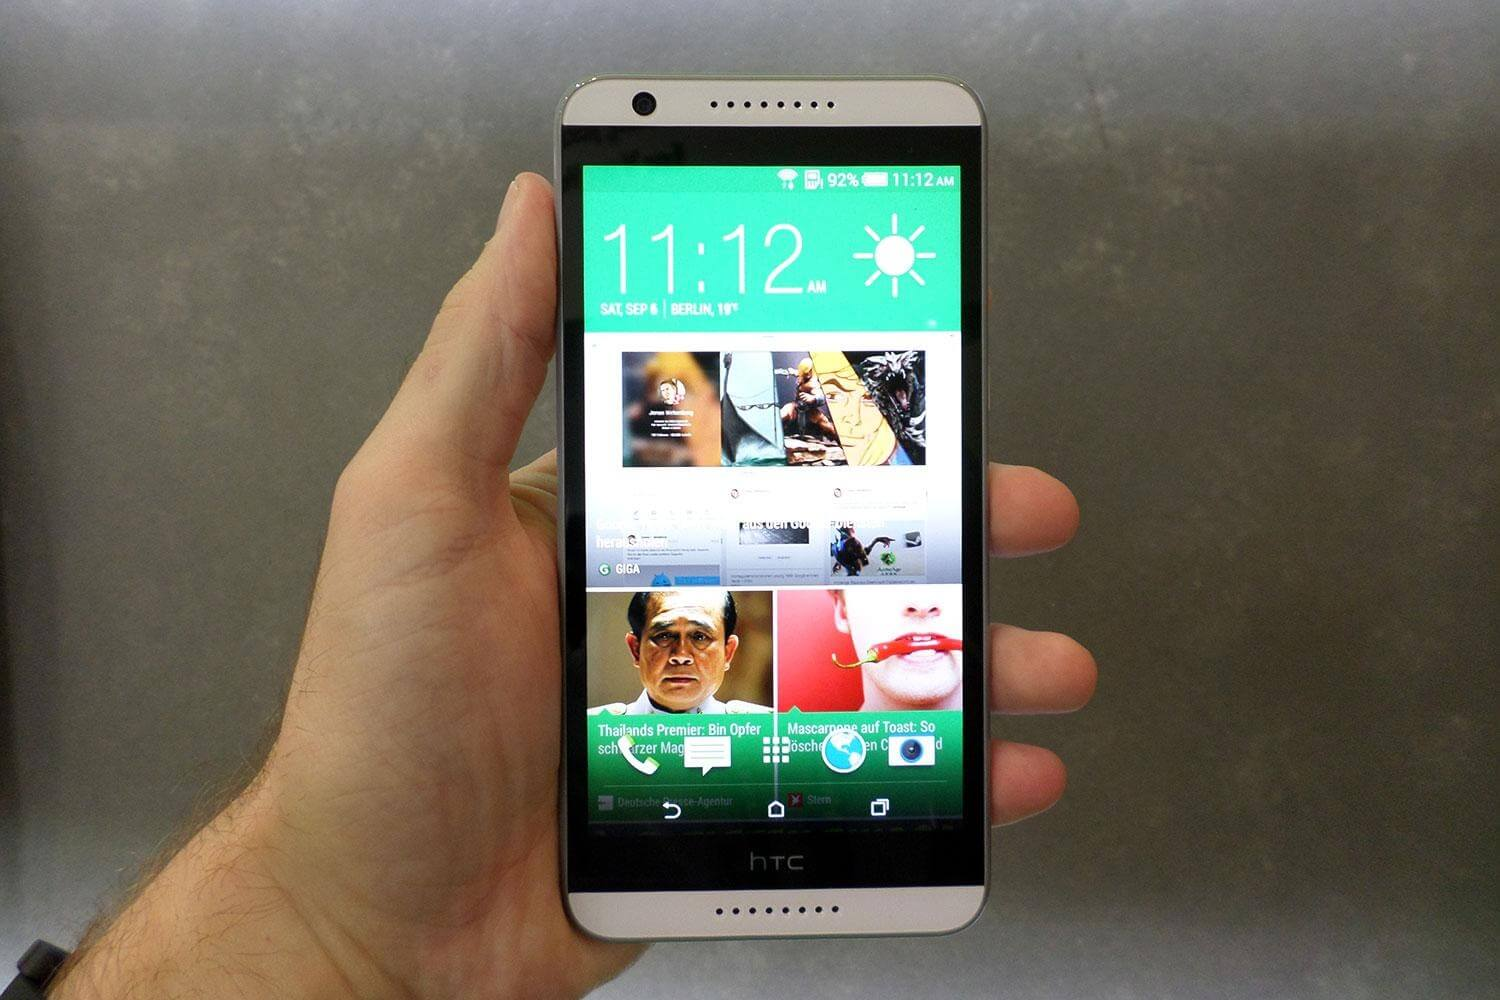 htc-desire-820-hands-on-front-1500x1000